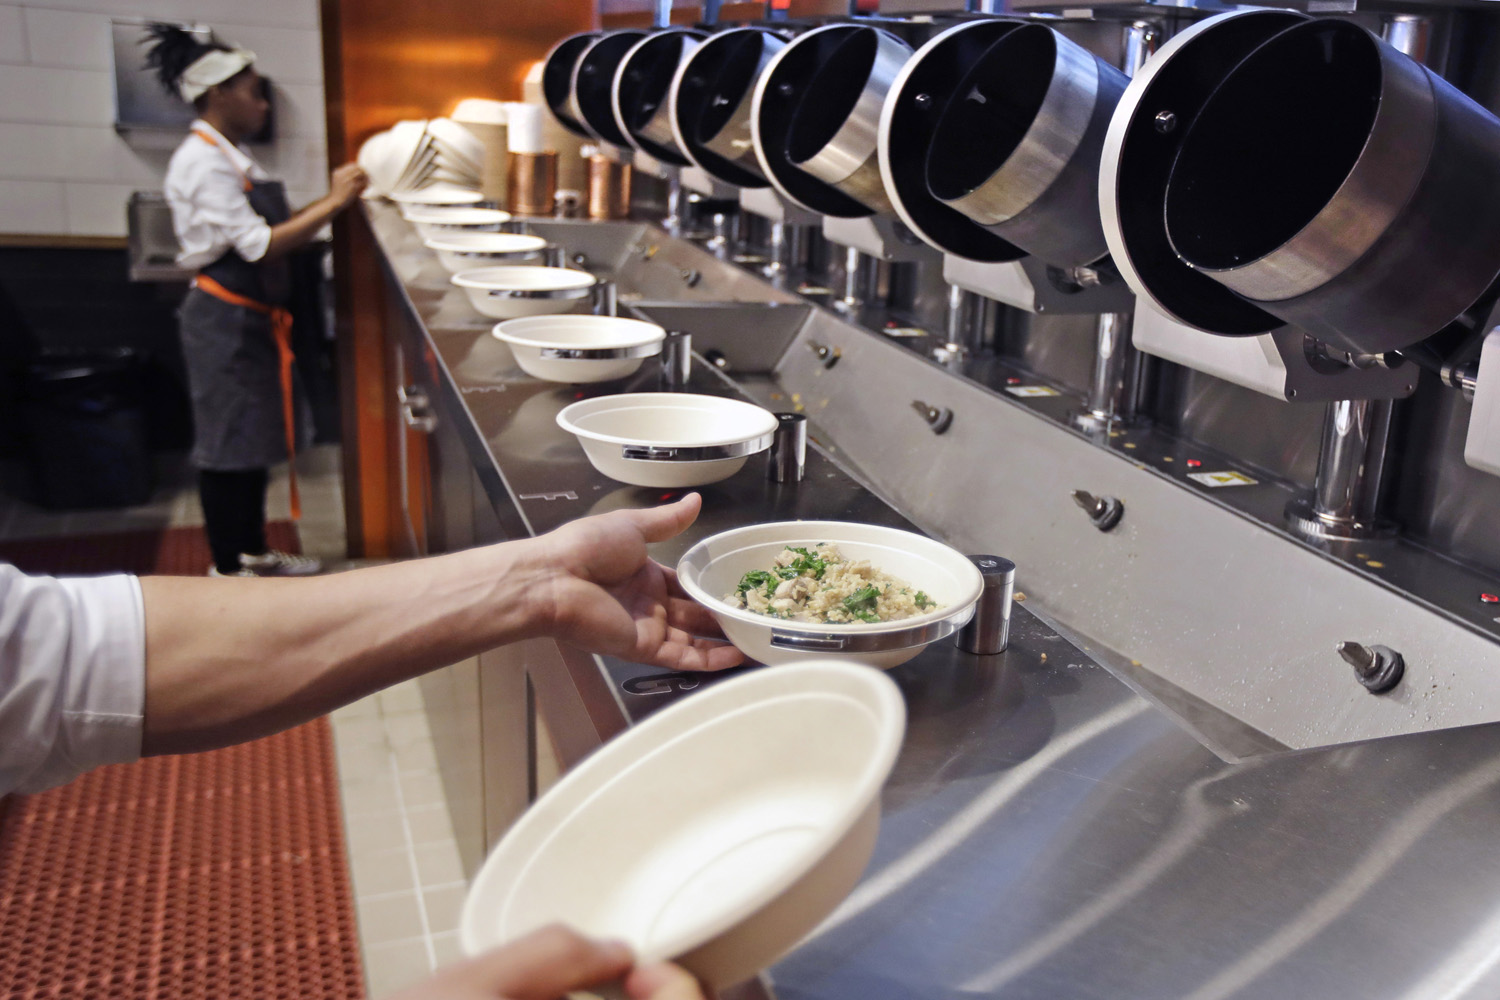 """A worker lifts a lunch bowl off the production line at Spyce, a restaurant which uses a robotic cooking process, in Boston, Thursday, May 3, 2018. Robots can't yet bake a souffle or fold a burrito, but the new restaurant in Boston is employing what it calls a """"never-before-seen robotic kitchen"""" to cook up ingredients and spout them into a bowl. (Charles Krupa/AP)"""